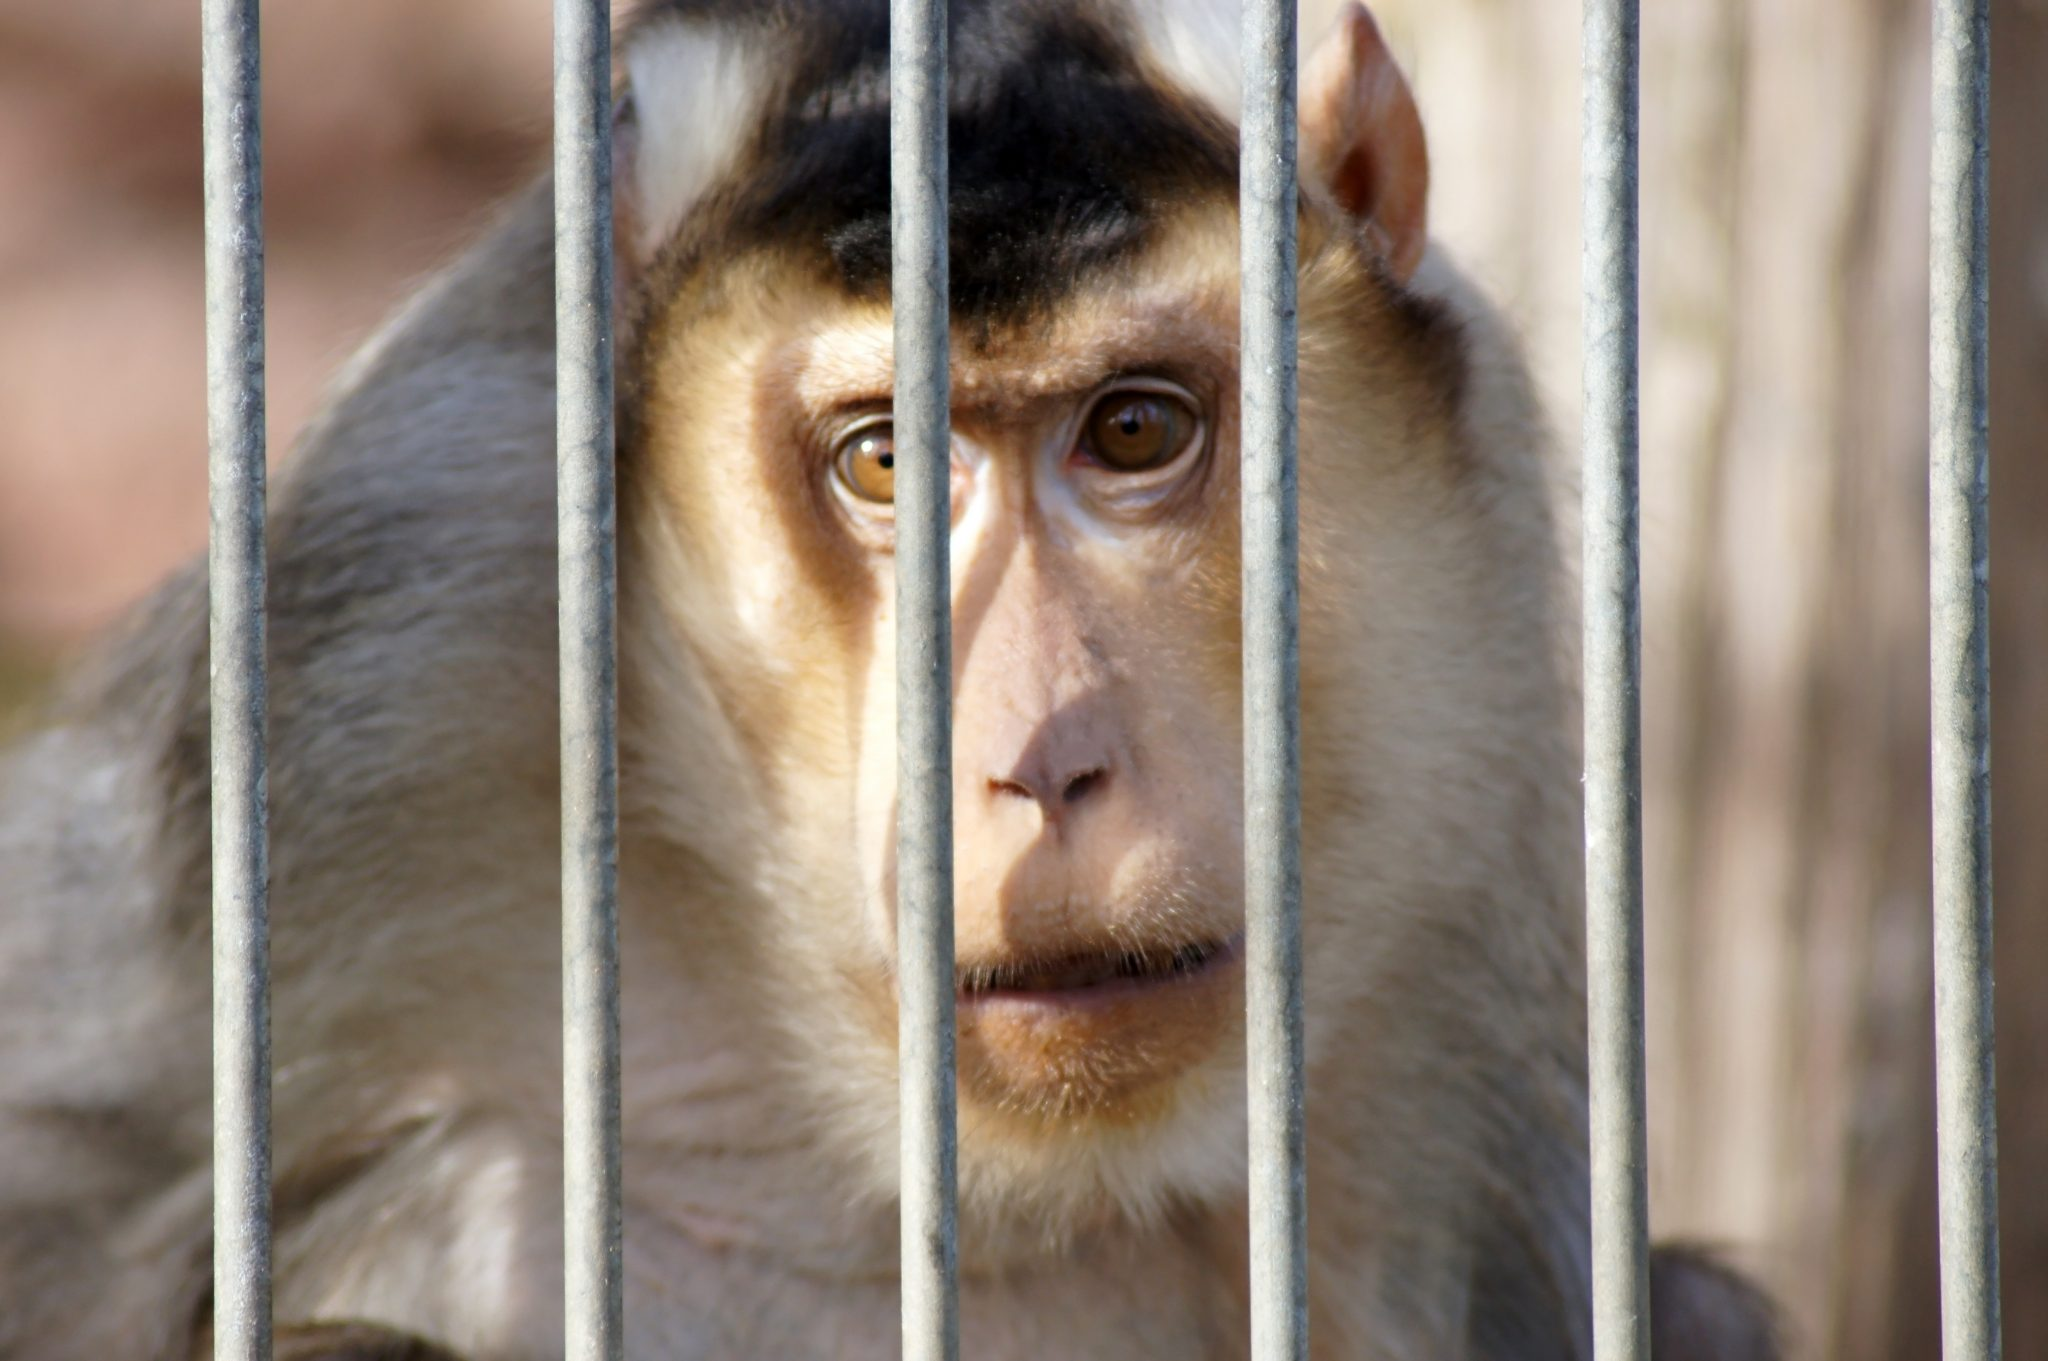 Petition: Monkey Strangled to Death in California Lab